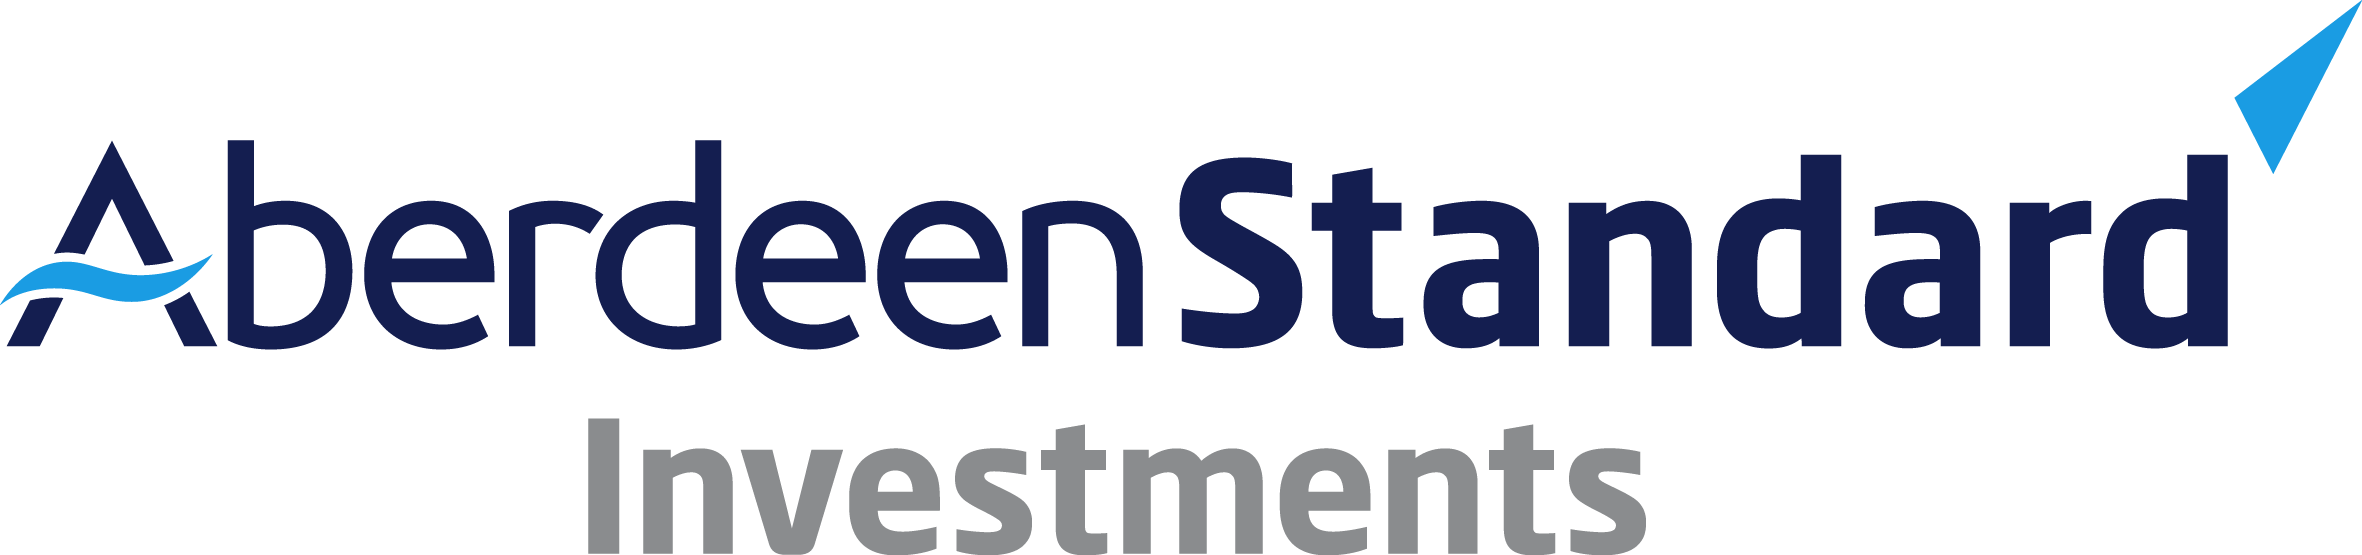 ABERDEEN NEW THAI INVESTMENT TRUST PLC Logo